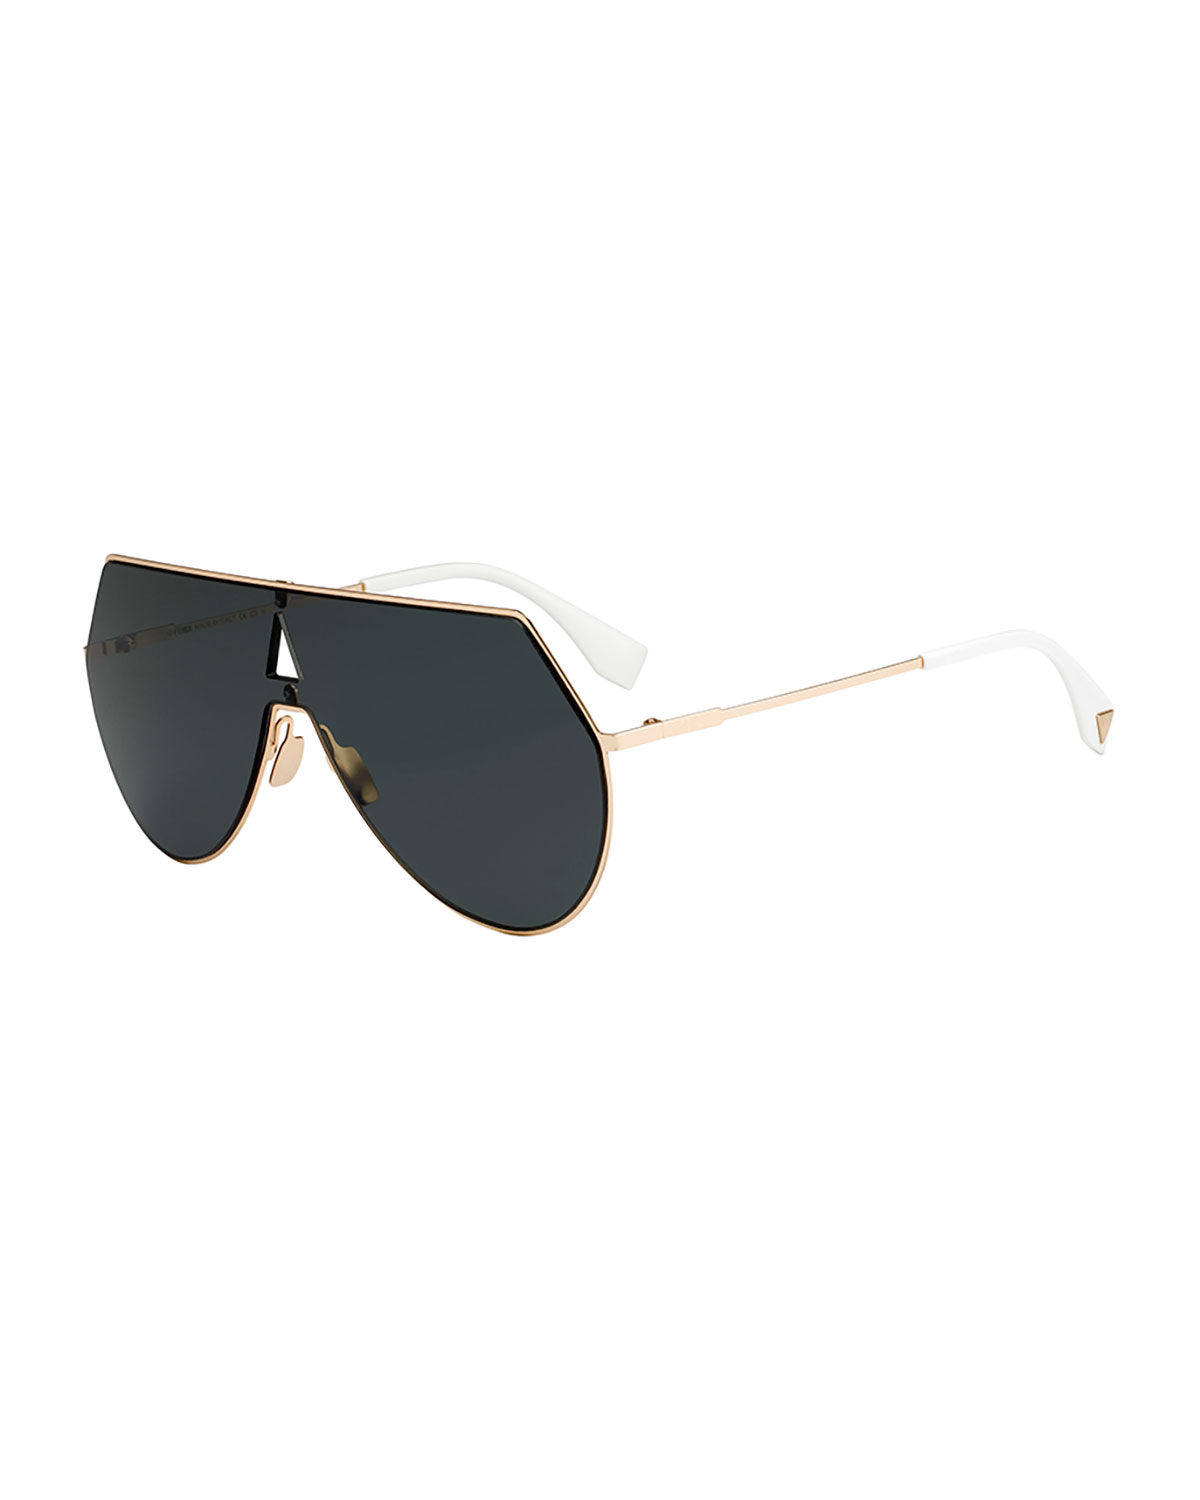 21f5b18267 Fendi Eyeline Mitered Shield Sunglasses